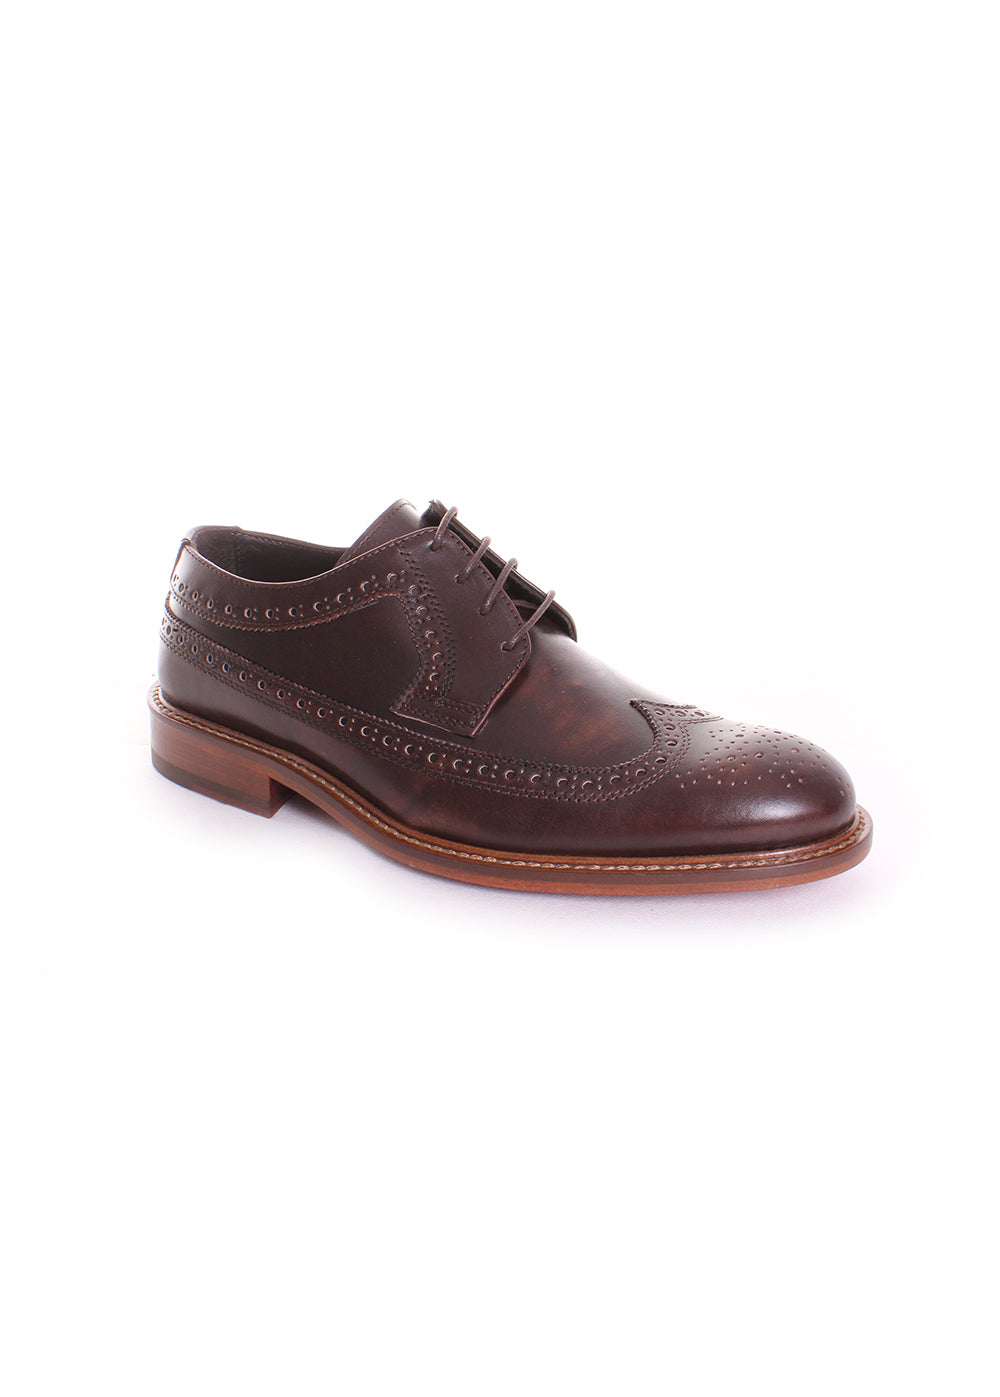 Bugatchi Sorrento Derby Oxford in Testa Di Moro Brown